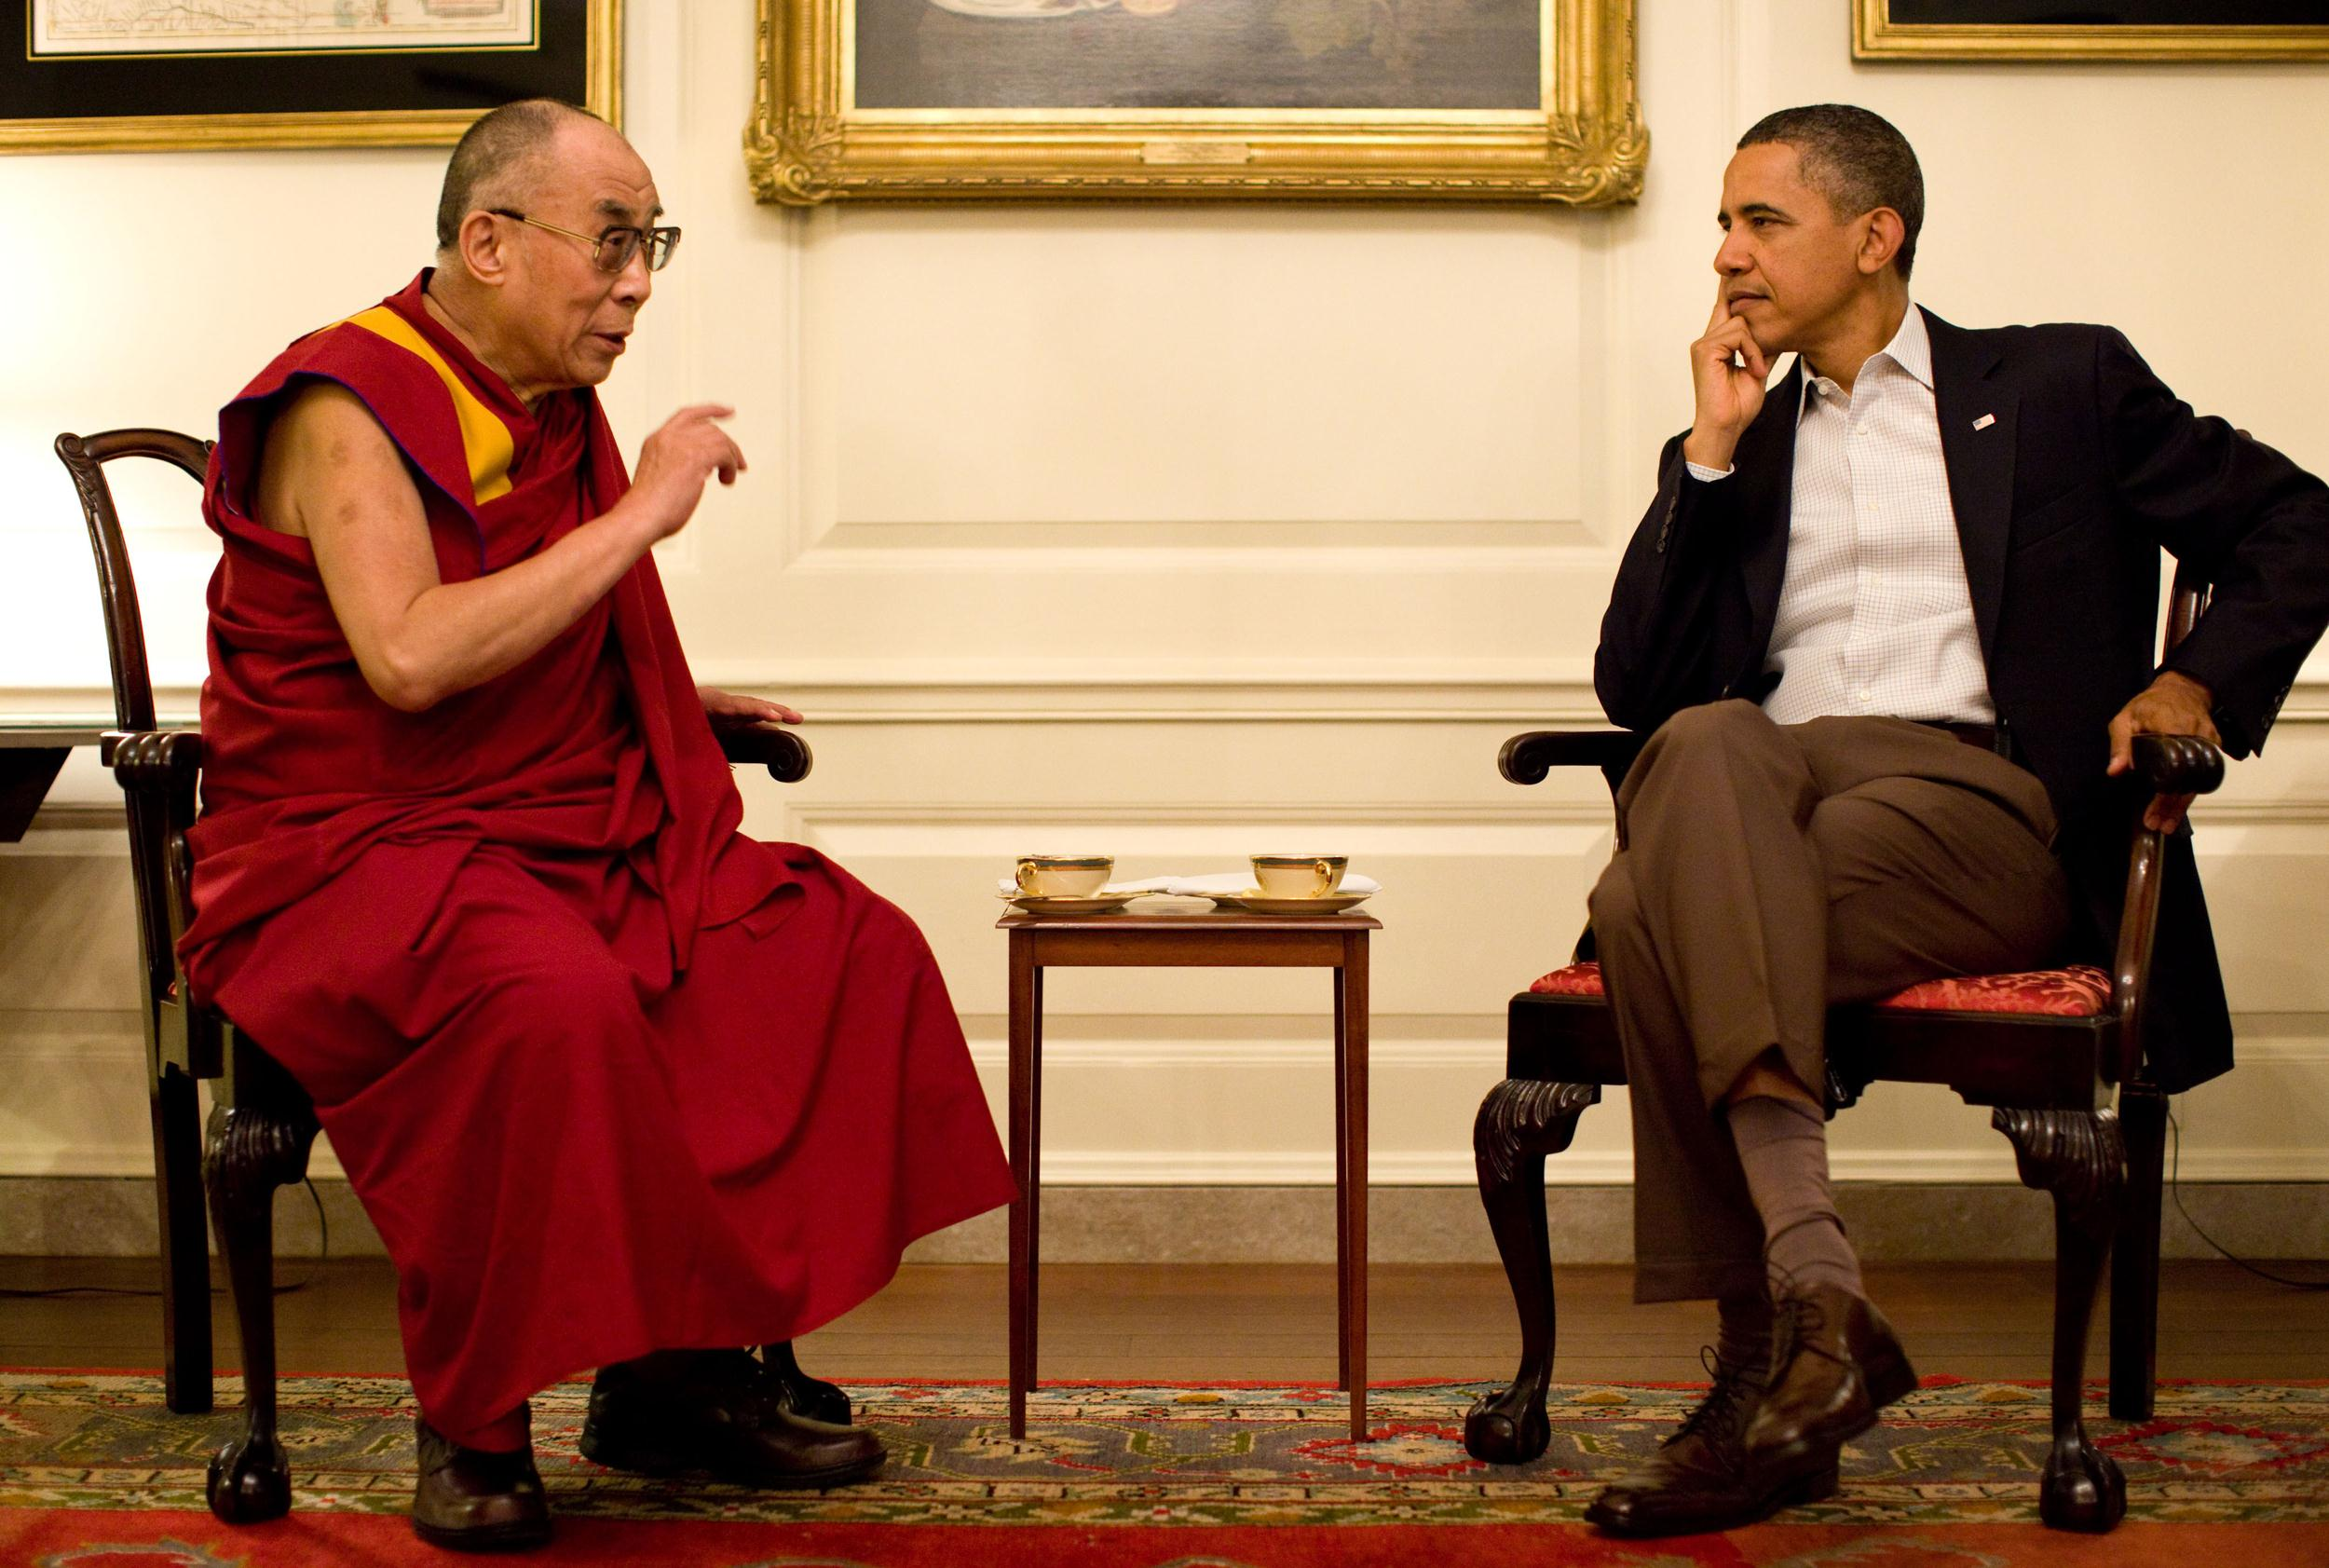 Dalai Lama and Obama set for first joint public appearance